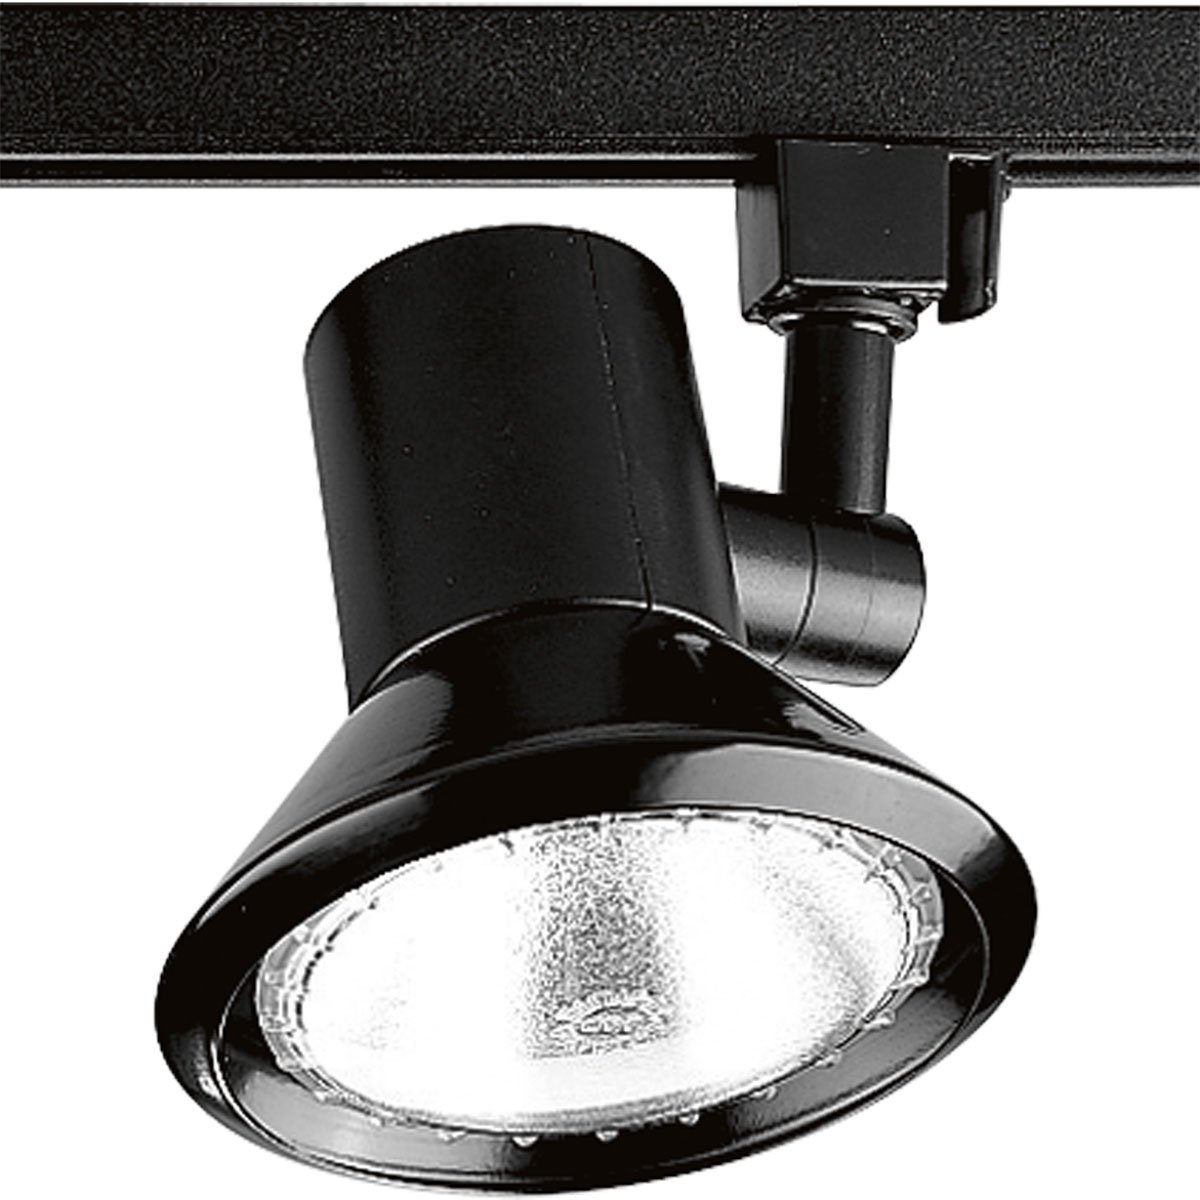 Progress Lighting P9220-31 Shallow Profile Non-Metallic Molded Fitter with Aluminum Reflector, Black